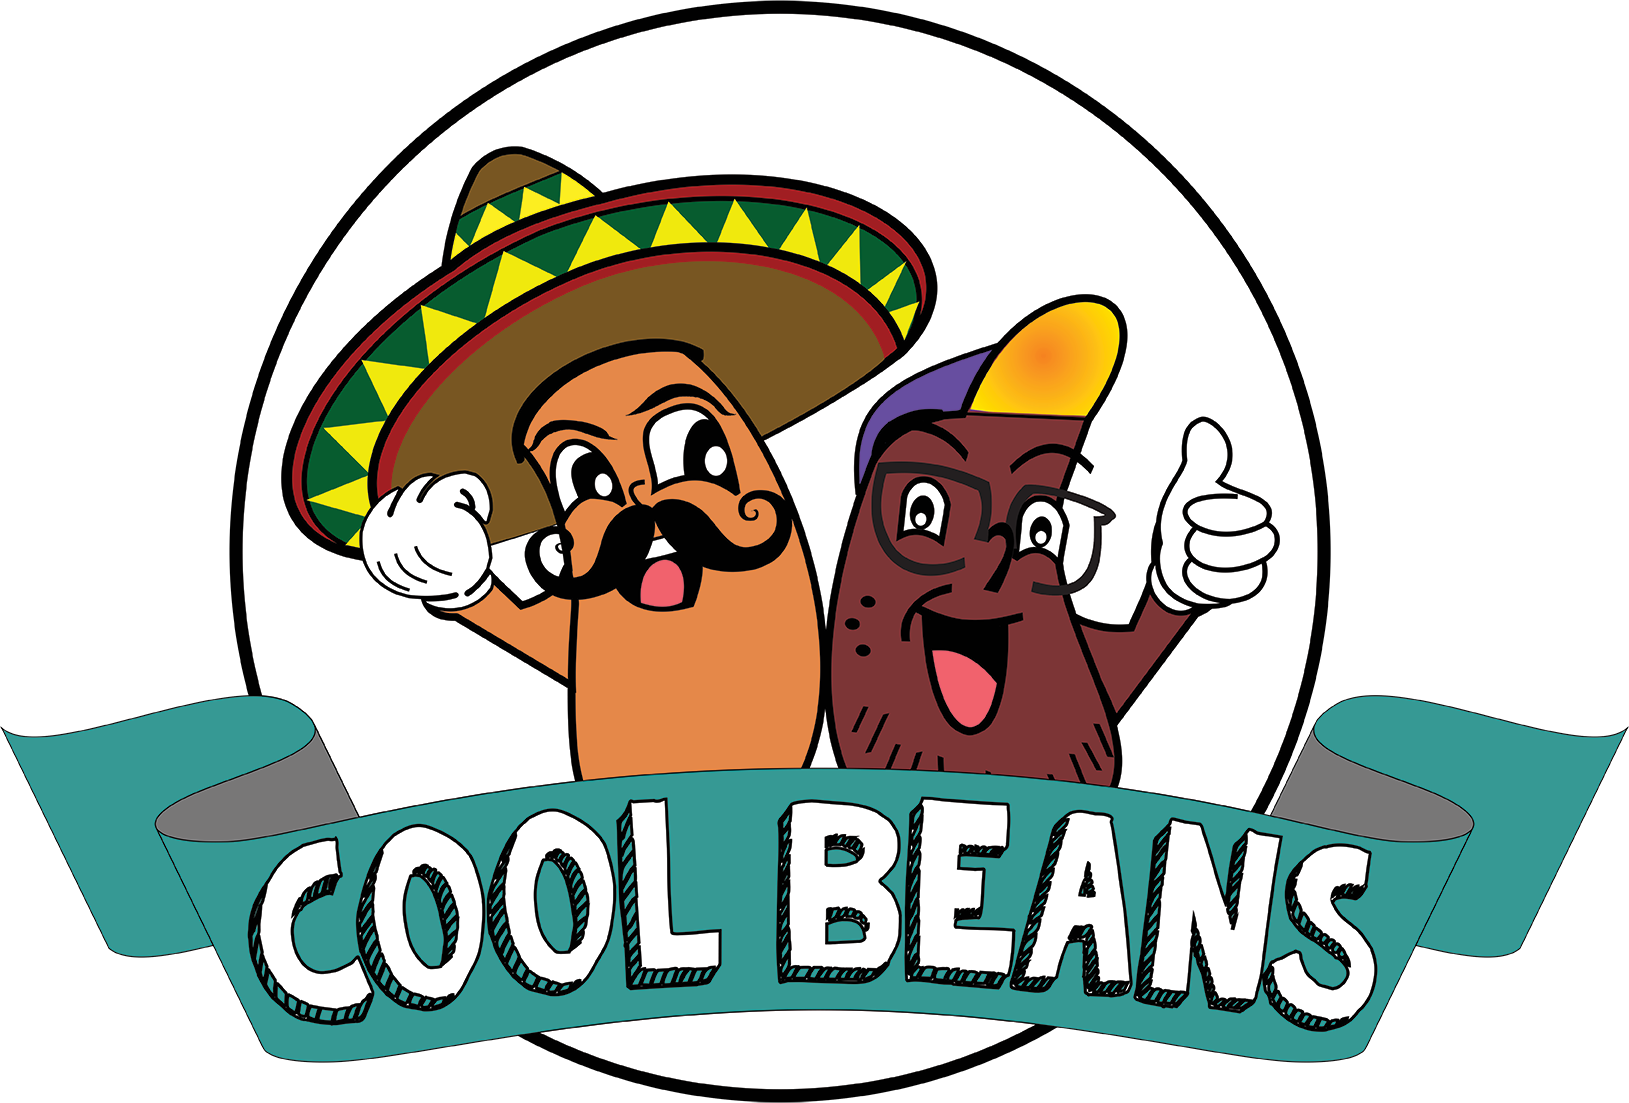 Order tamales cool eatery. Beans clipart refried bean